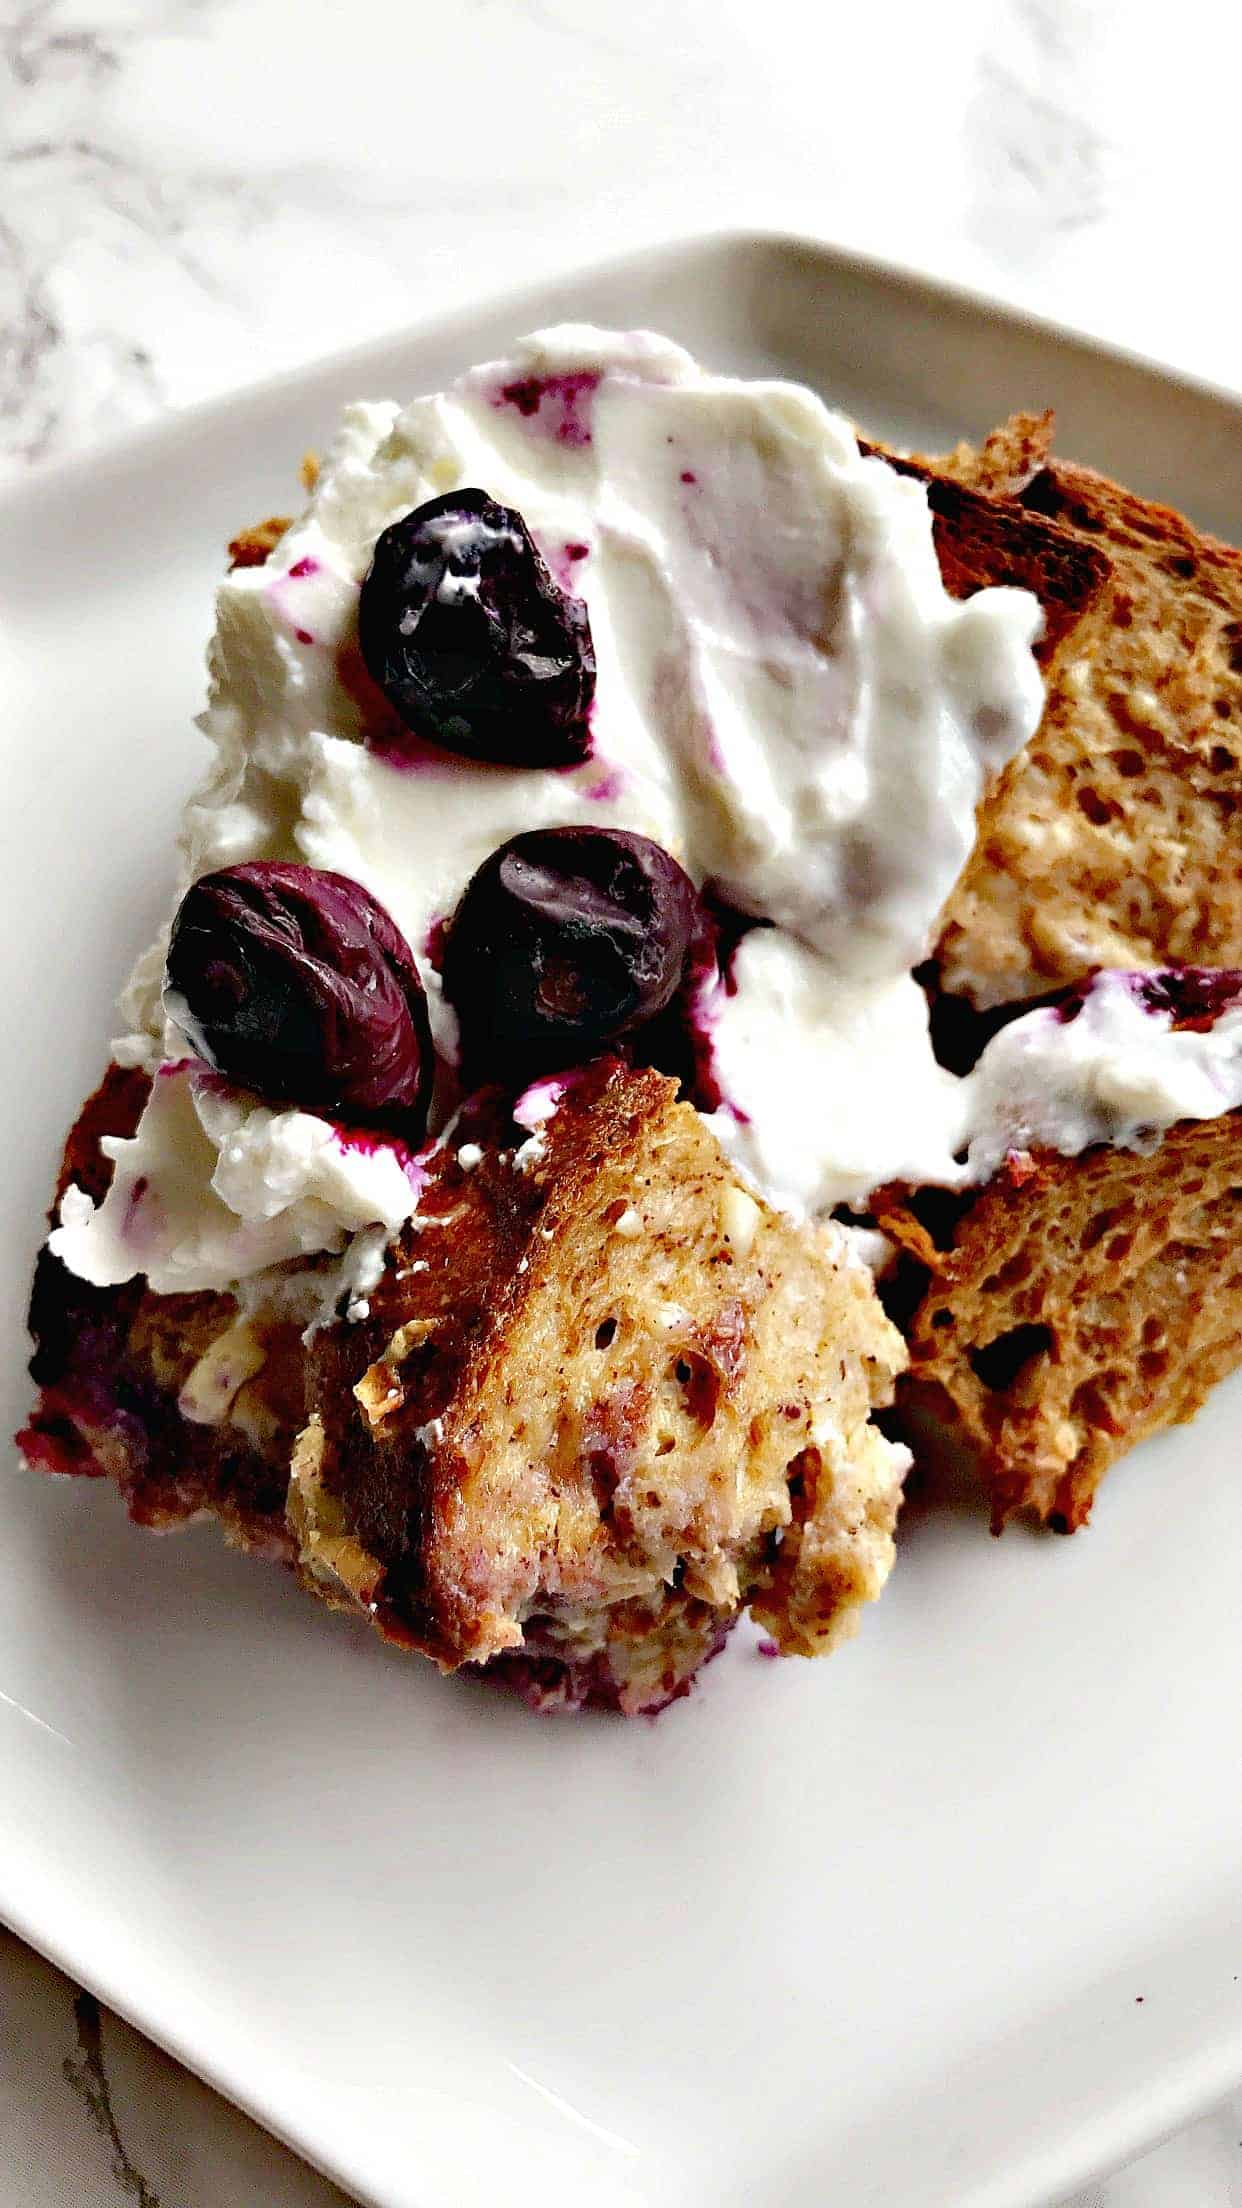 blueberry cream cheese french toast on a white plate